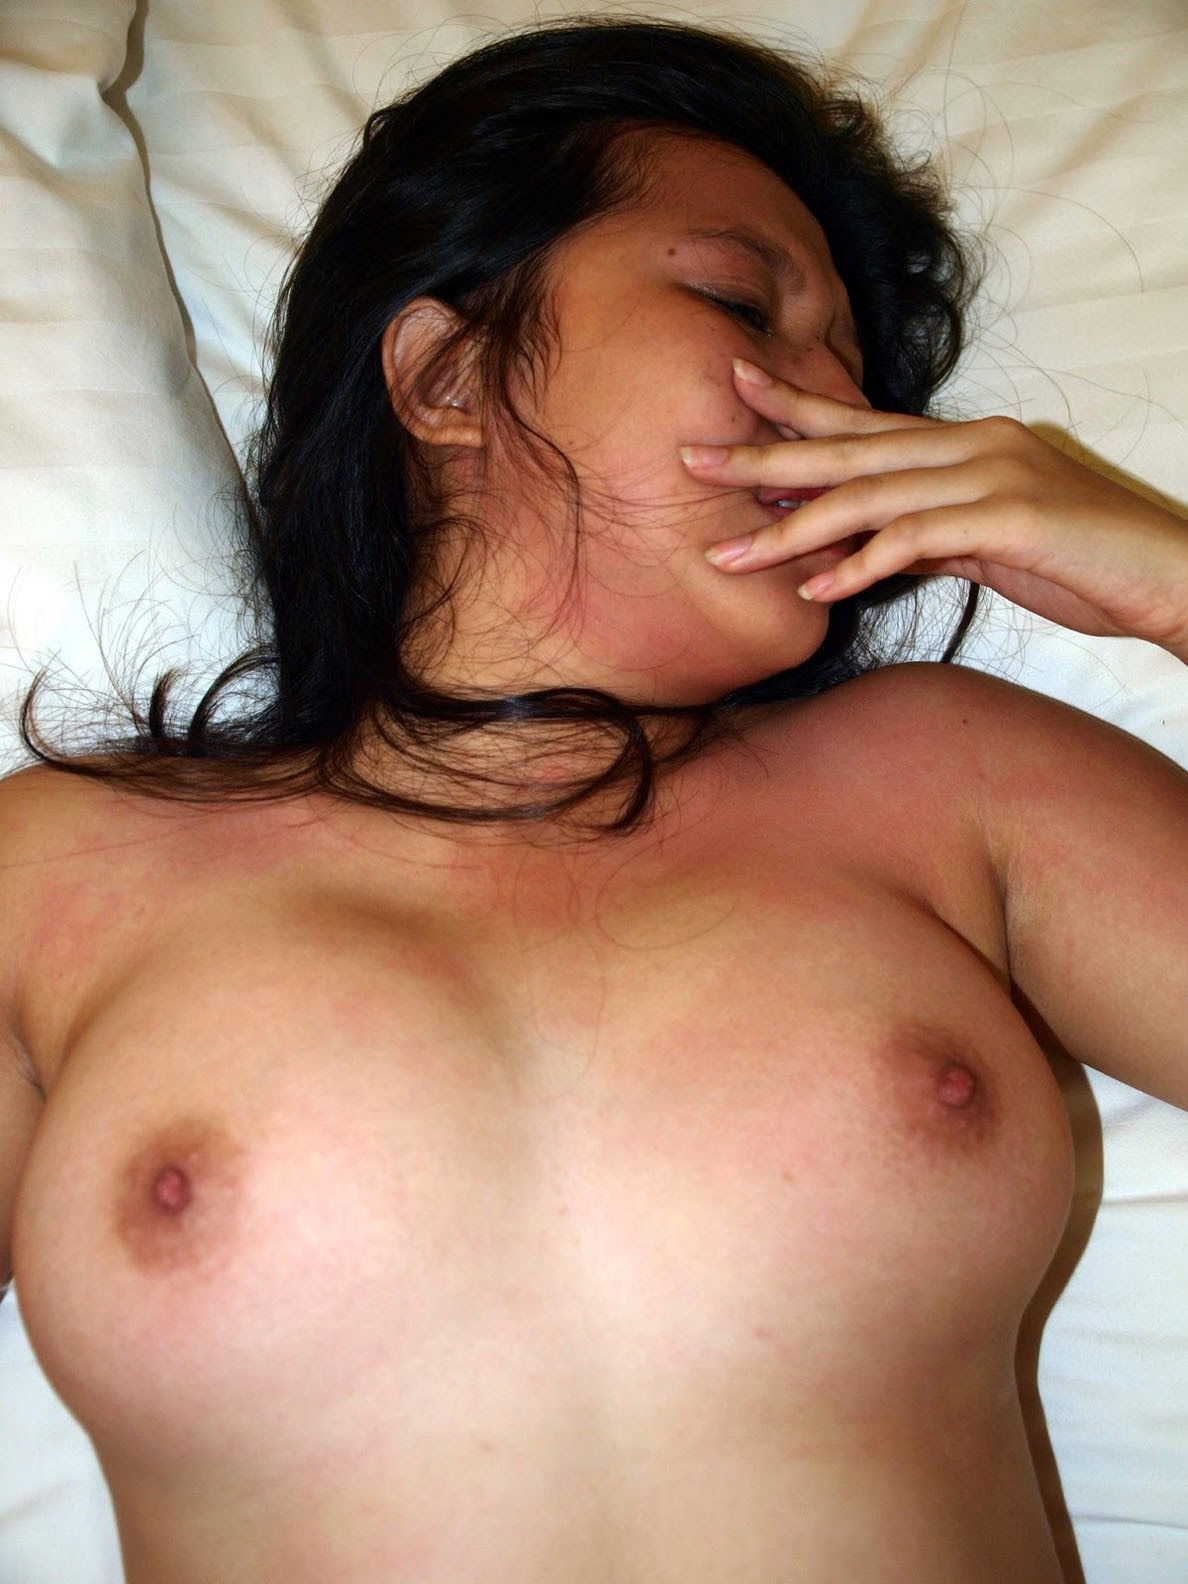 interracial anal sex pictures